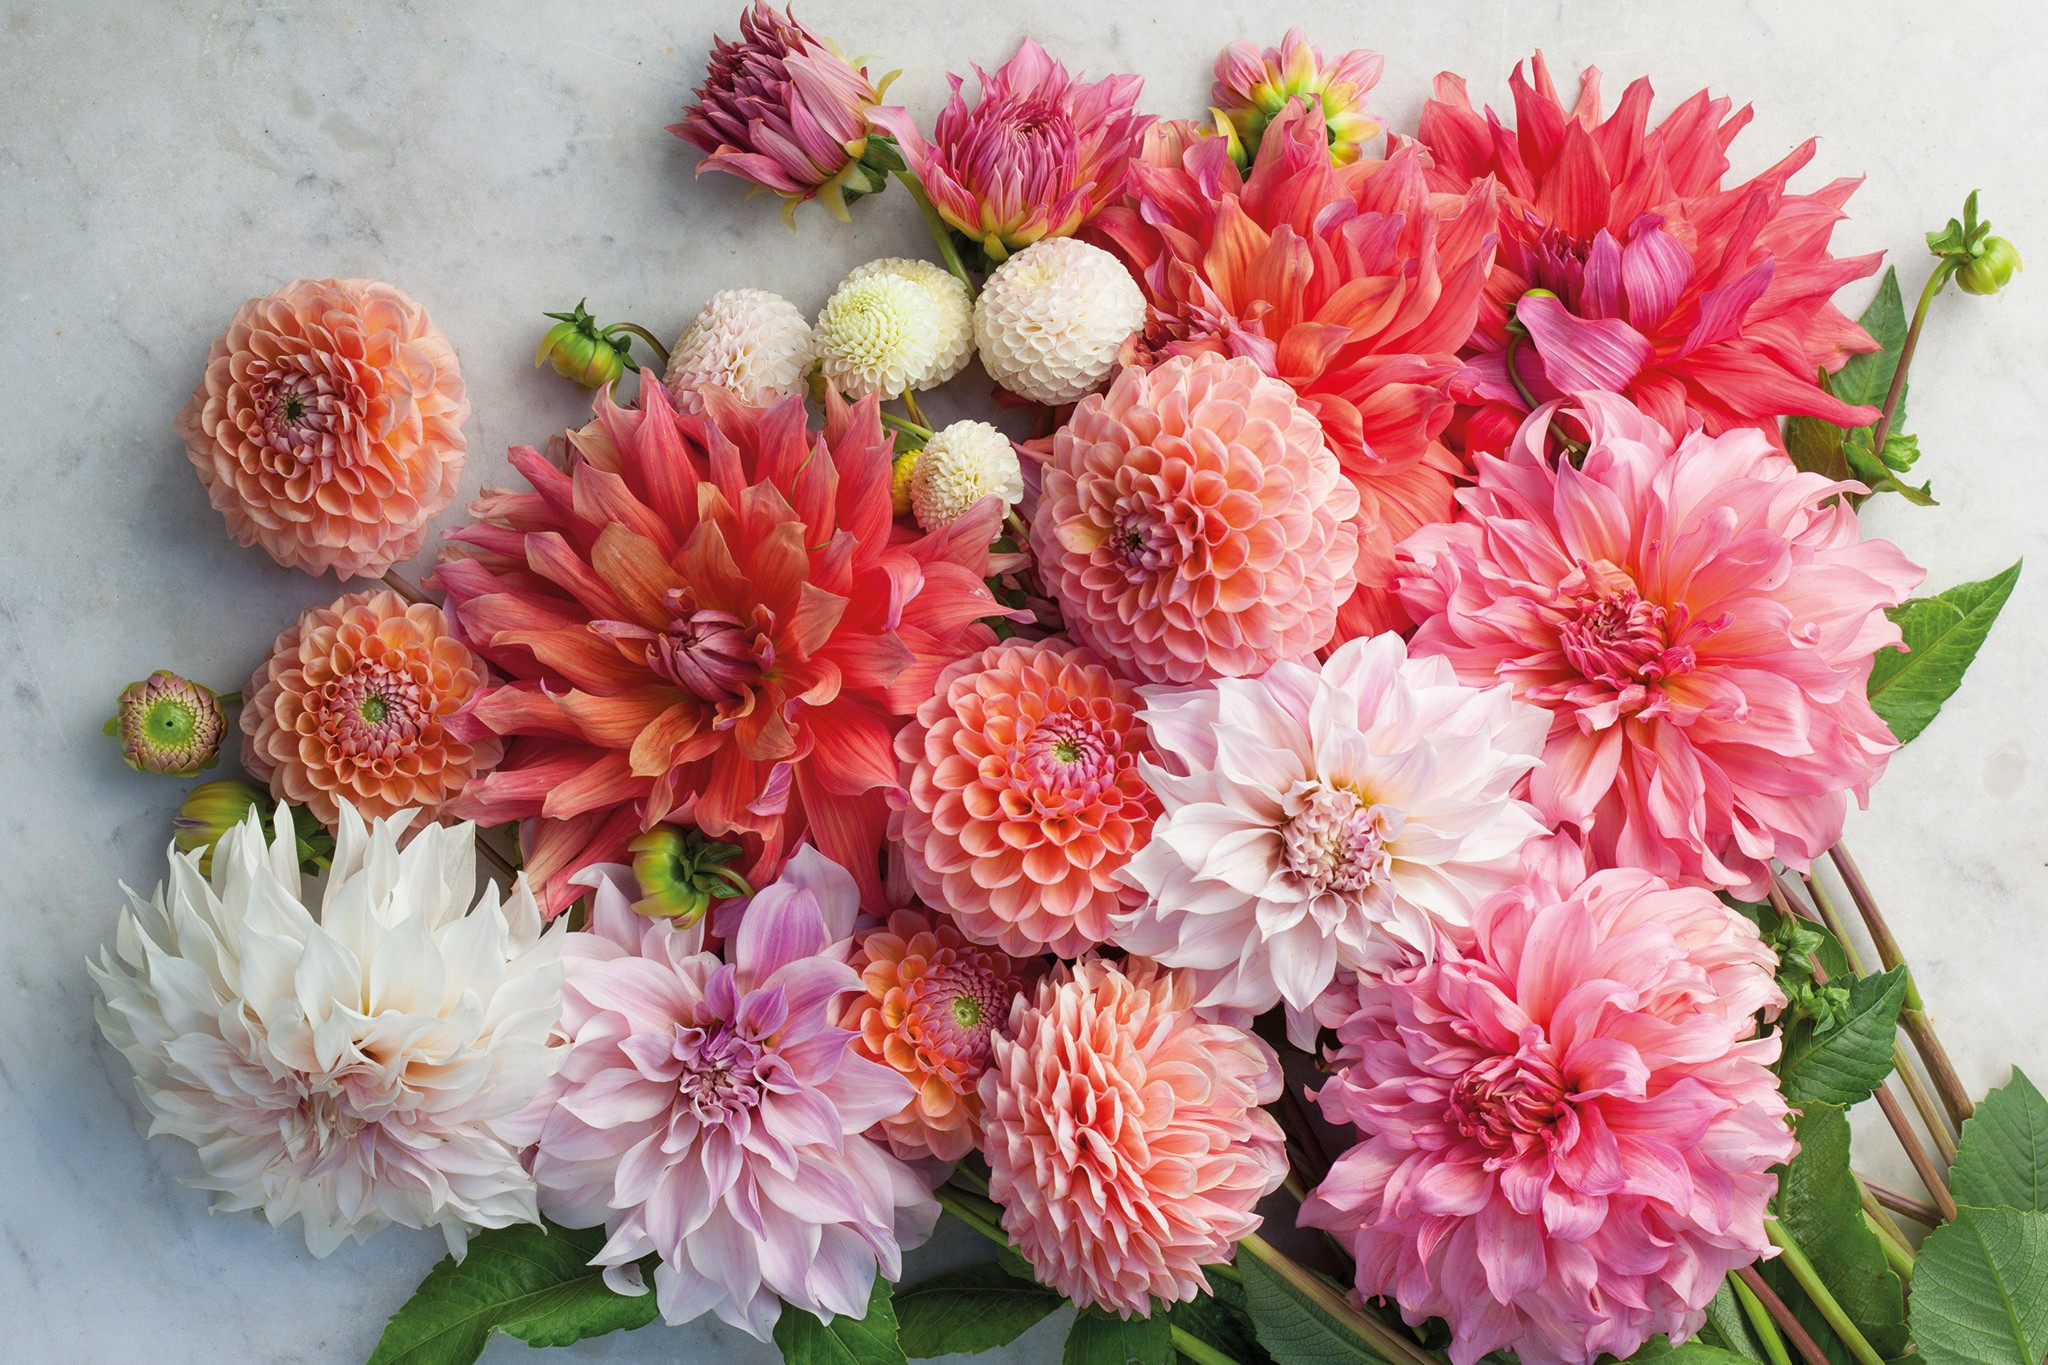 sarah-raven-dahlias-20-per-cent-off-2048-1365